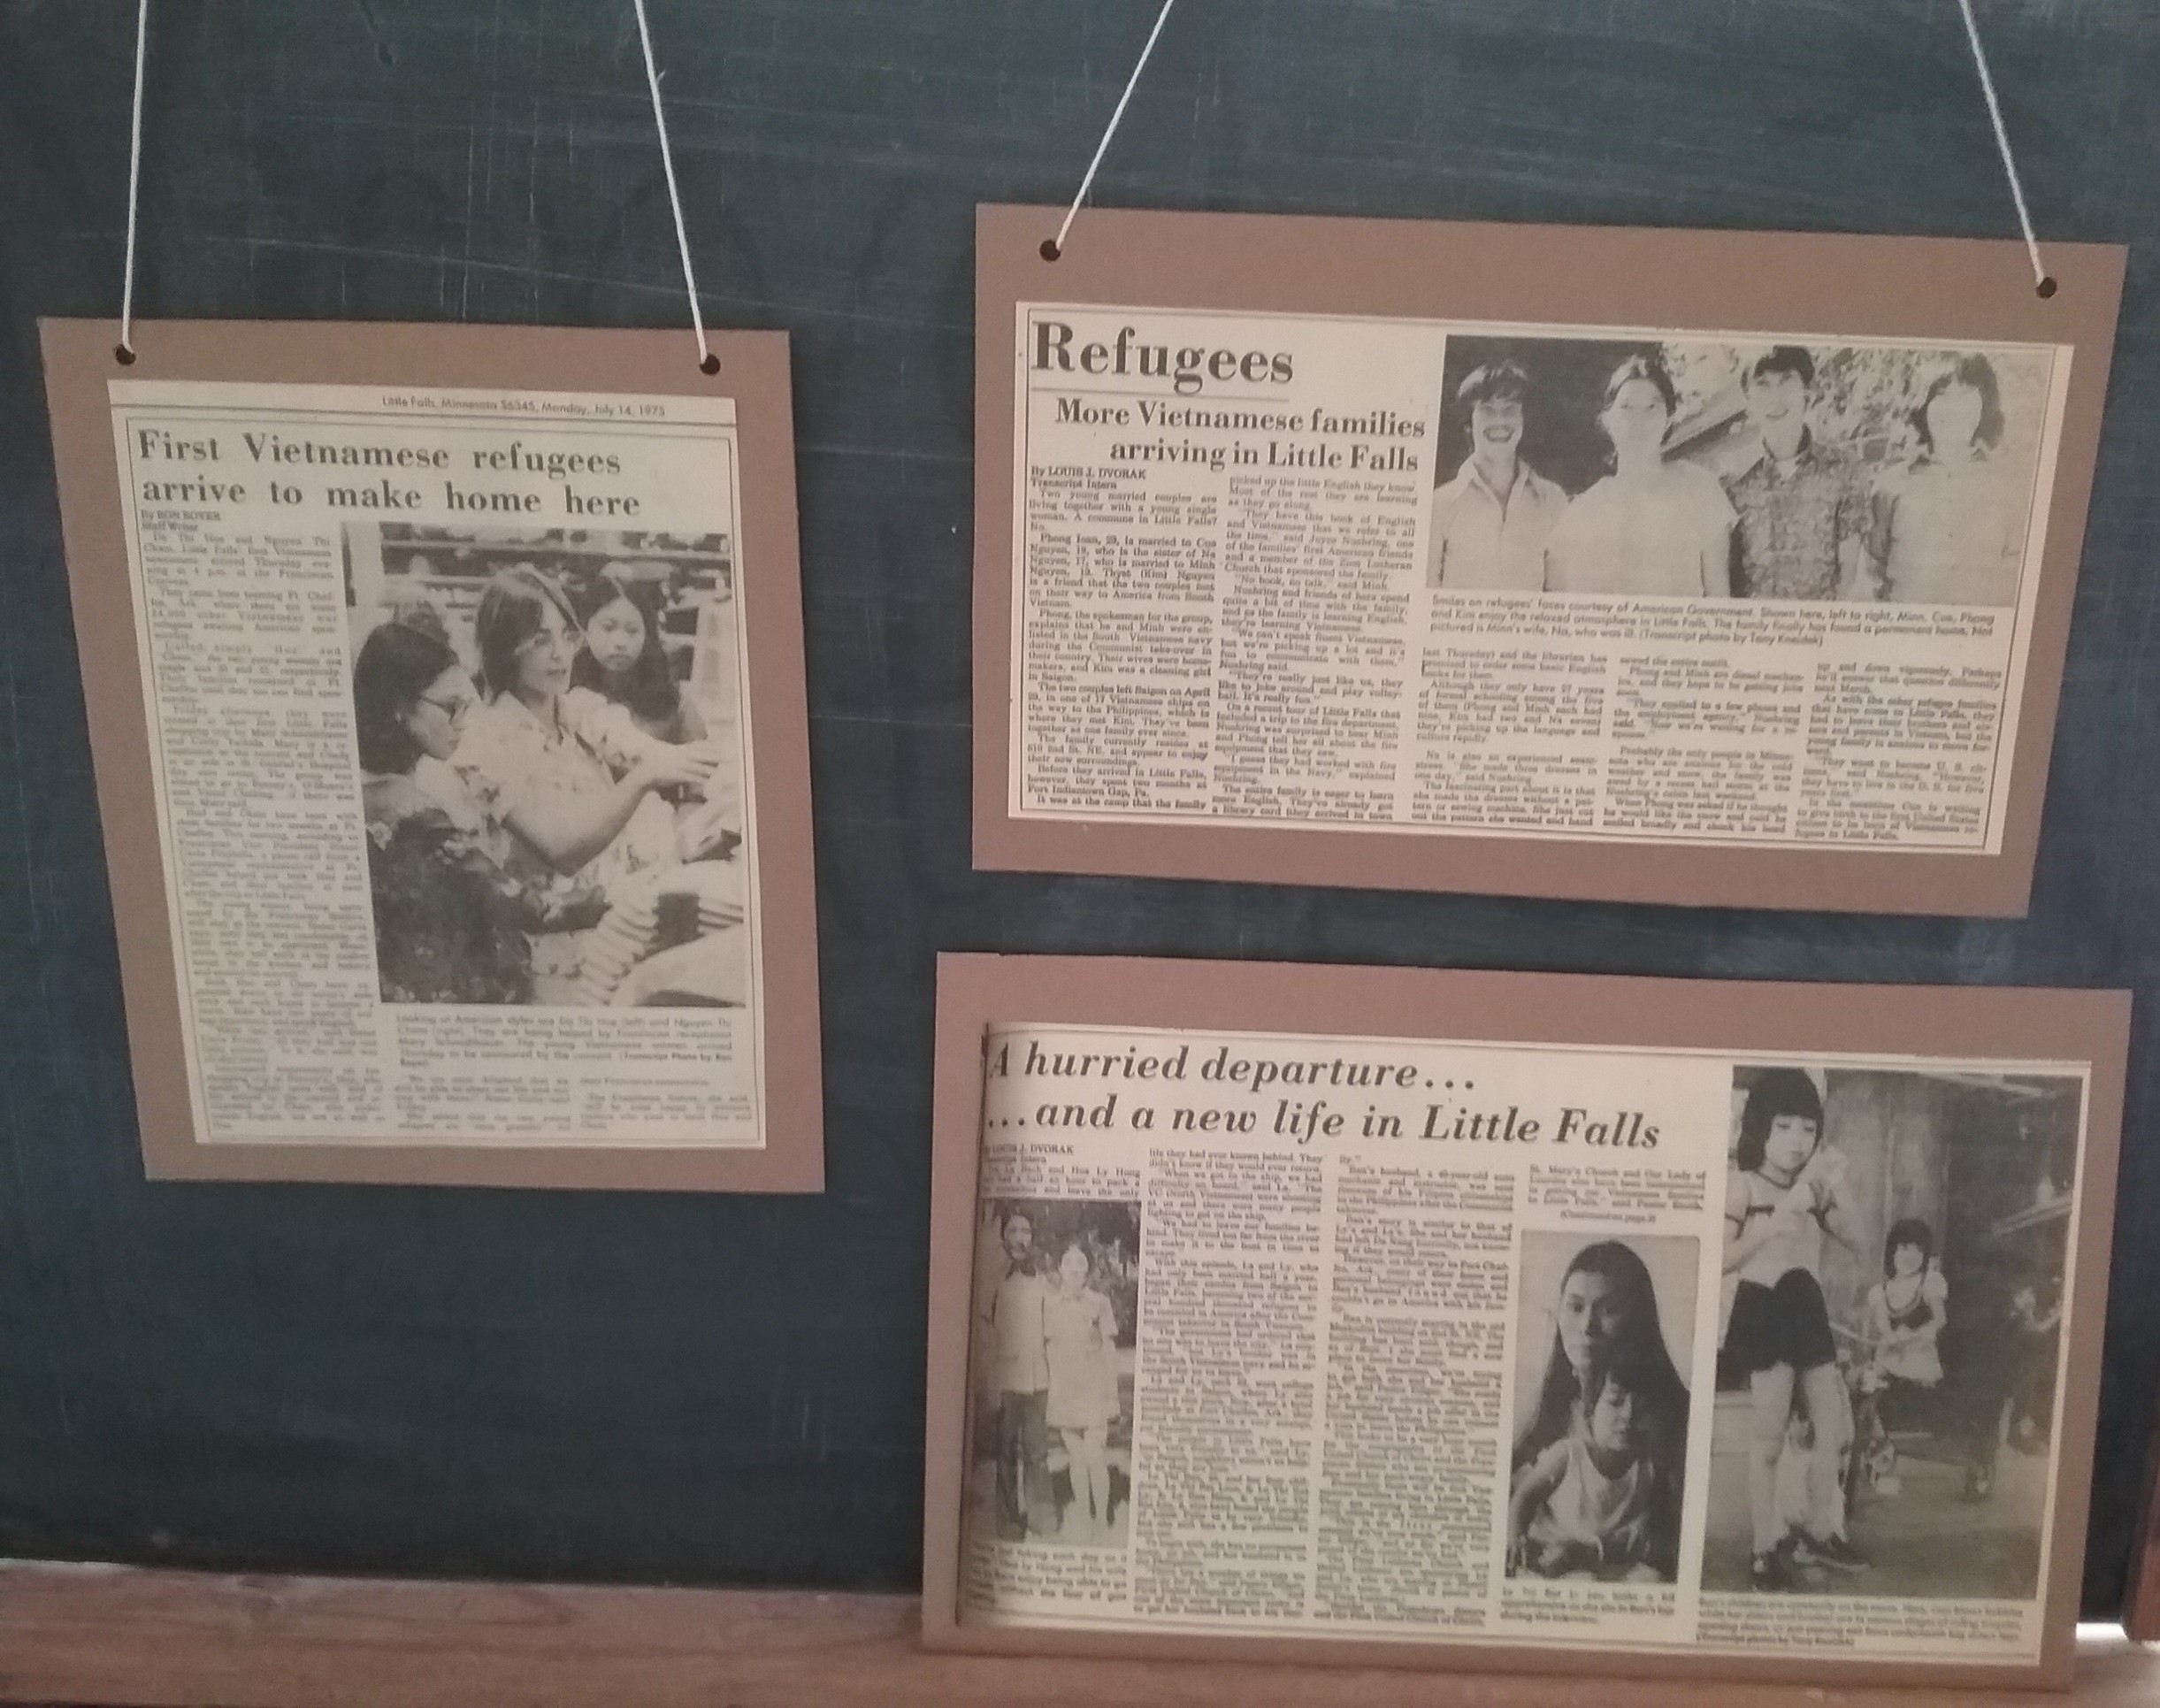 Articles regarding refugee resettlement in Little Falls, MN, after the Vietnam War, from the Little Falls Daily Transcript, 1975.